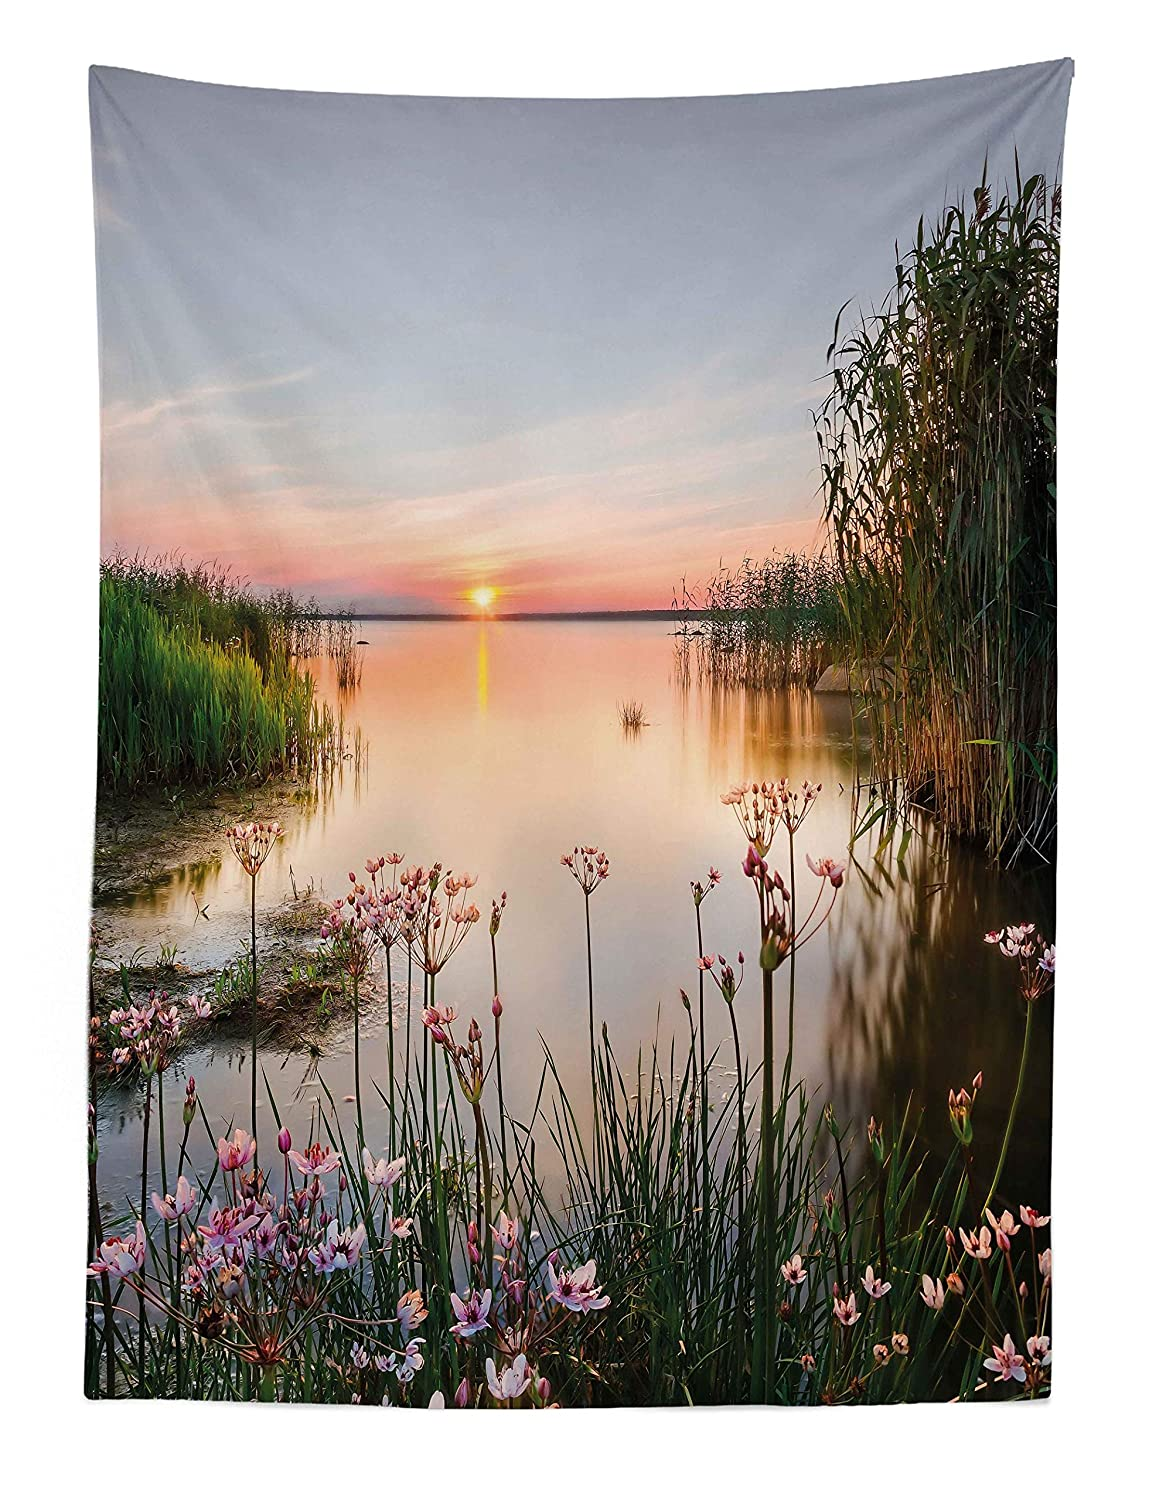 ABAKUHAUS Nature Tapestry Fabric Wall Hanging Decor for Bedroom Living Room Dorm 43 W X 58 L Sunset at Chudskoy Lake Estonia View Spring Flowers Landscape Photo Green Pale Pink Baby Blue